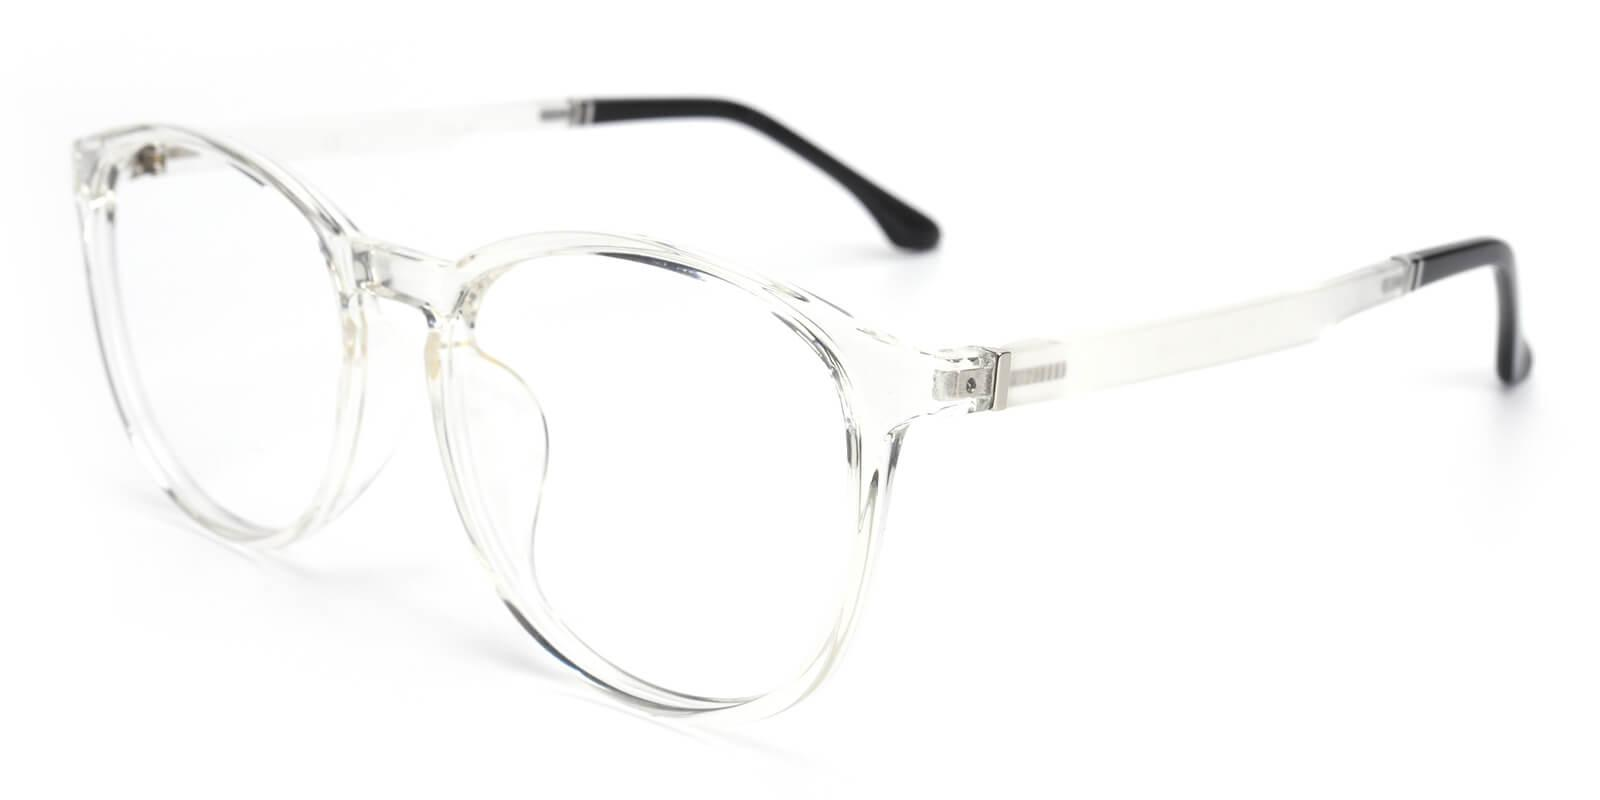 Vincily-Translucent-Round-TR-Eyeglasses-additional1